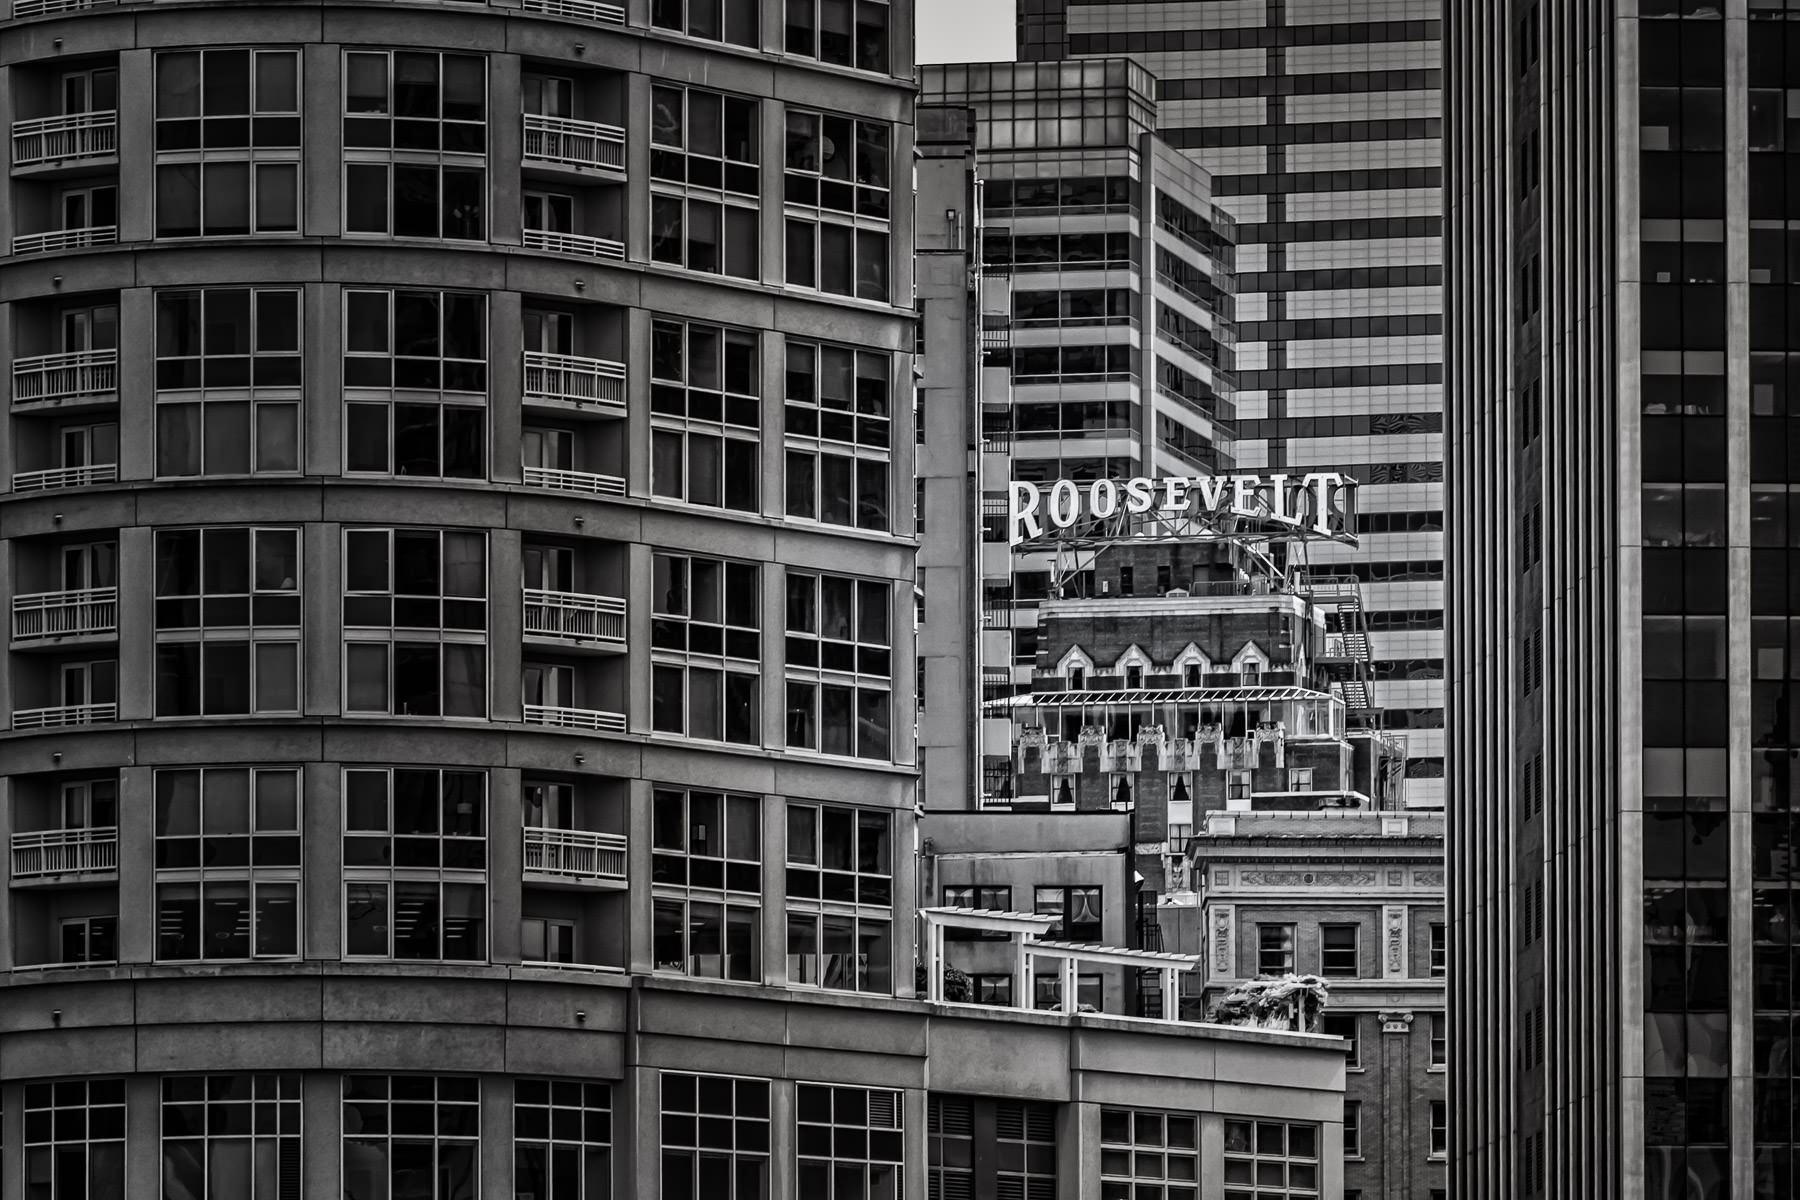 The rooftop sign of Seattle's Roosevelt Hotel peeks through the surrounding buildings.